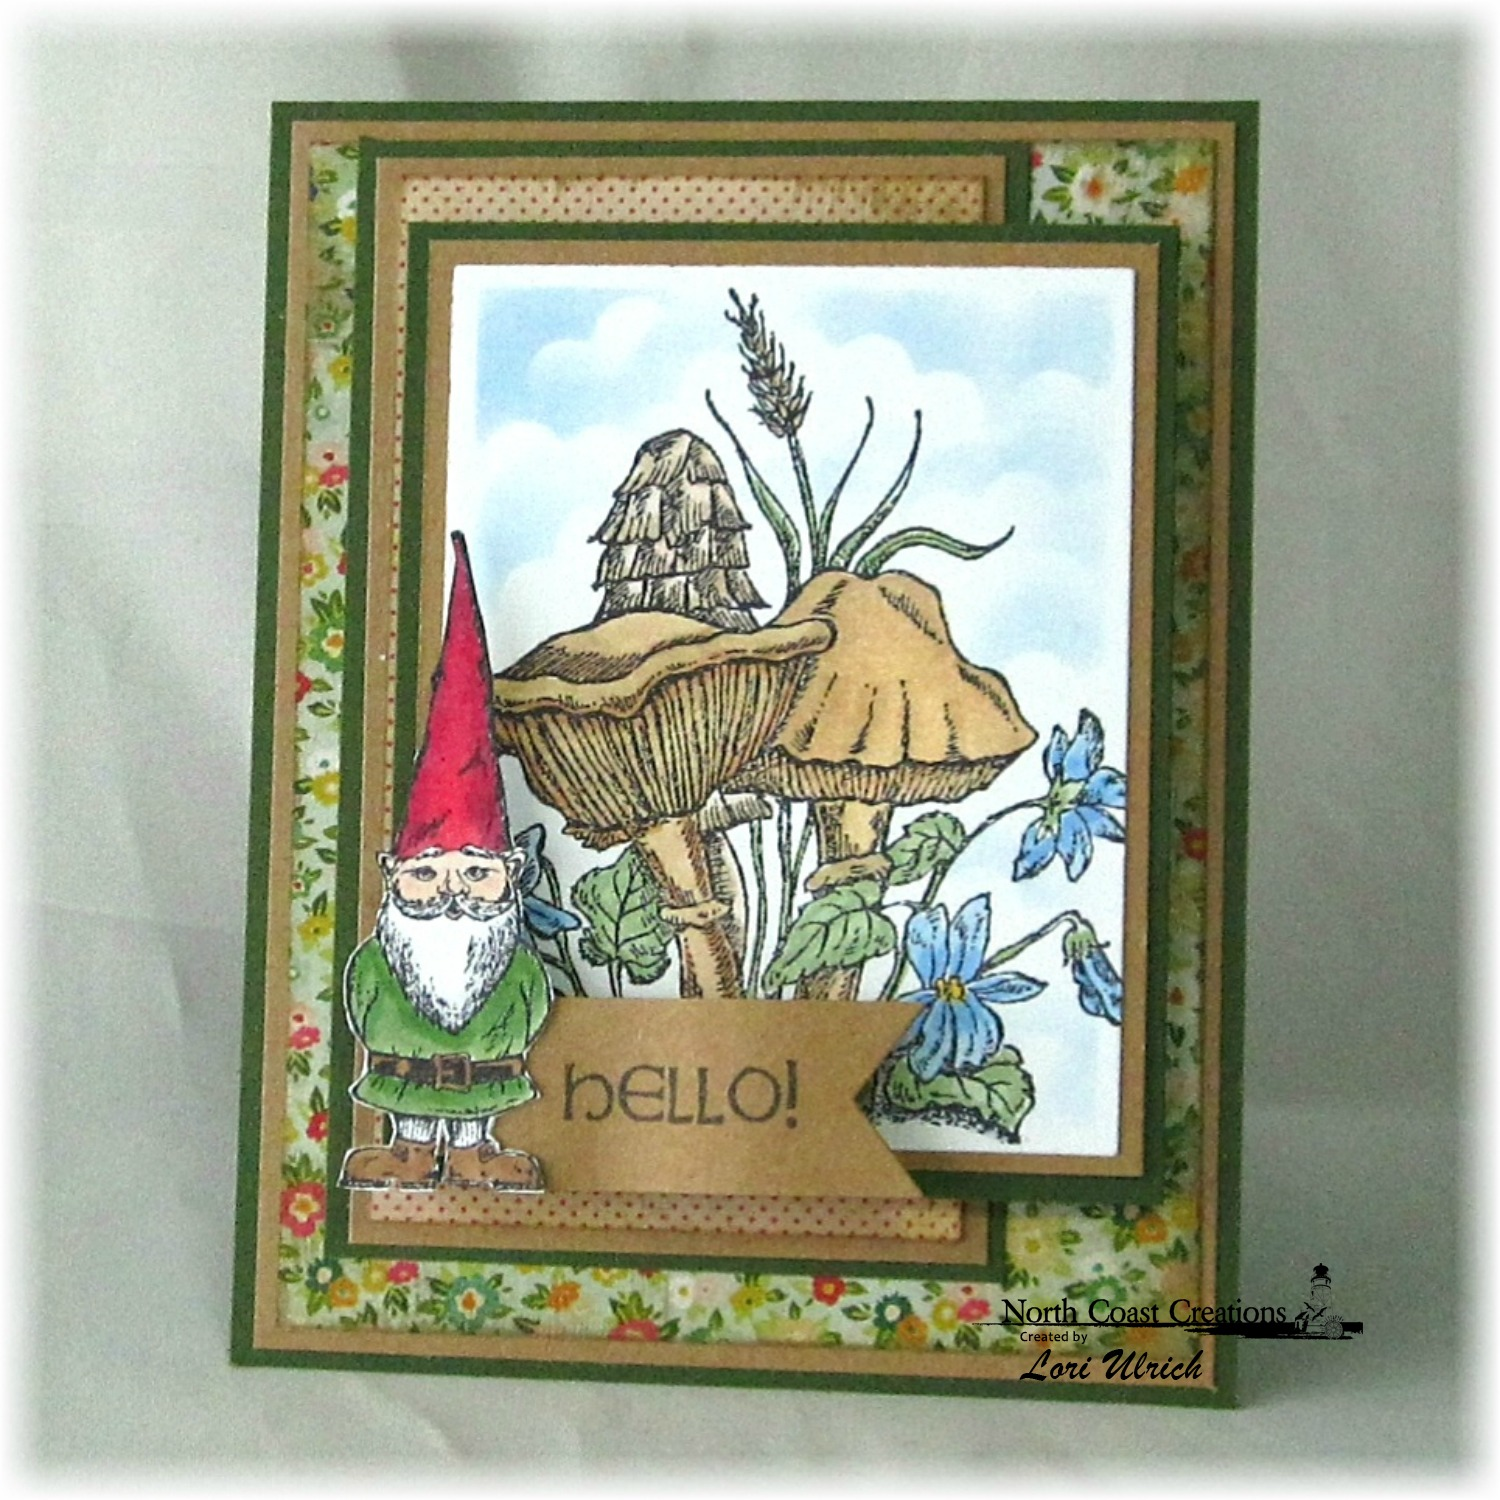 Stamps - North Coast Creations Gnome What?, Our Daily Bread Designs Custom Pennants Die